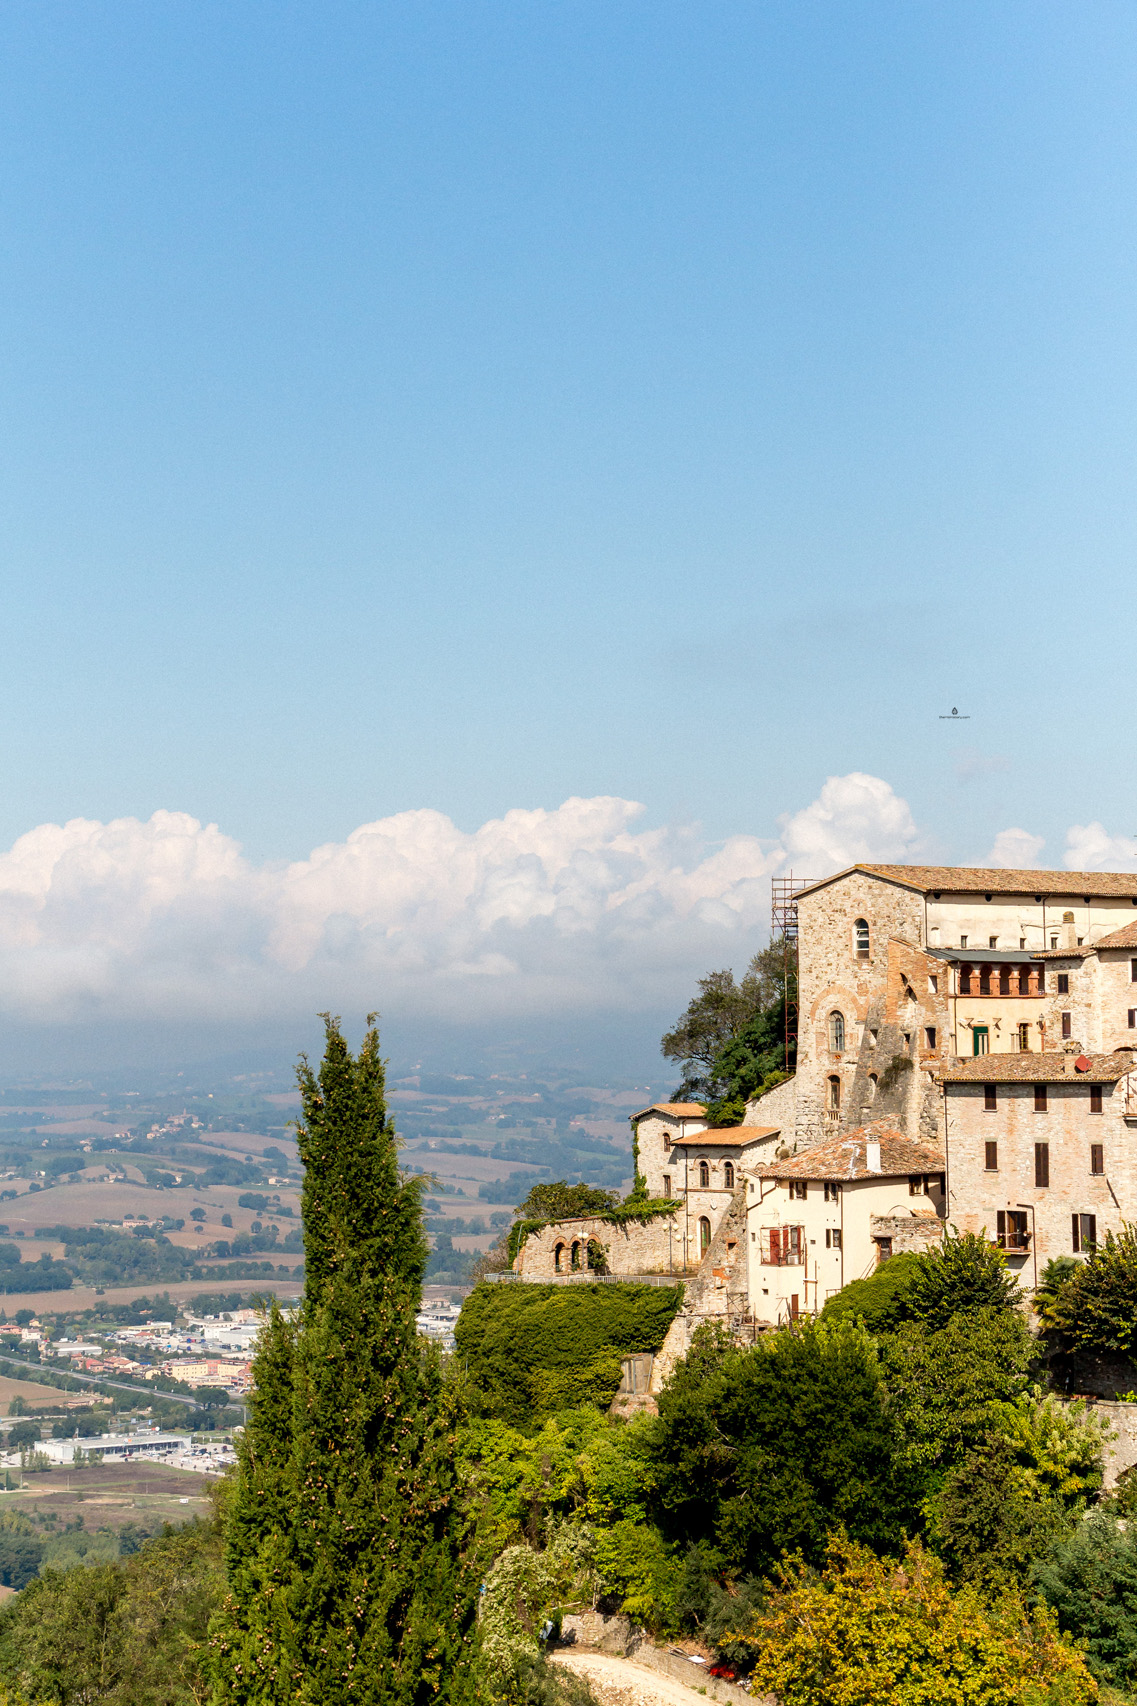 The town of Todi, Italy